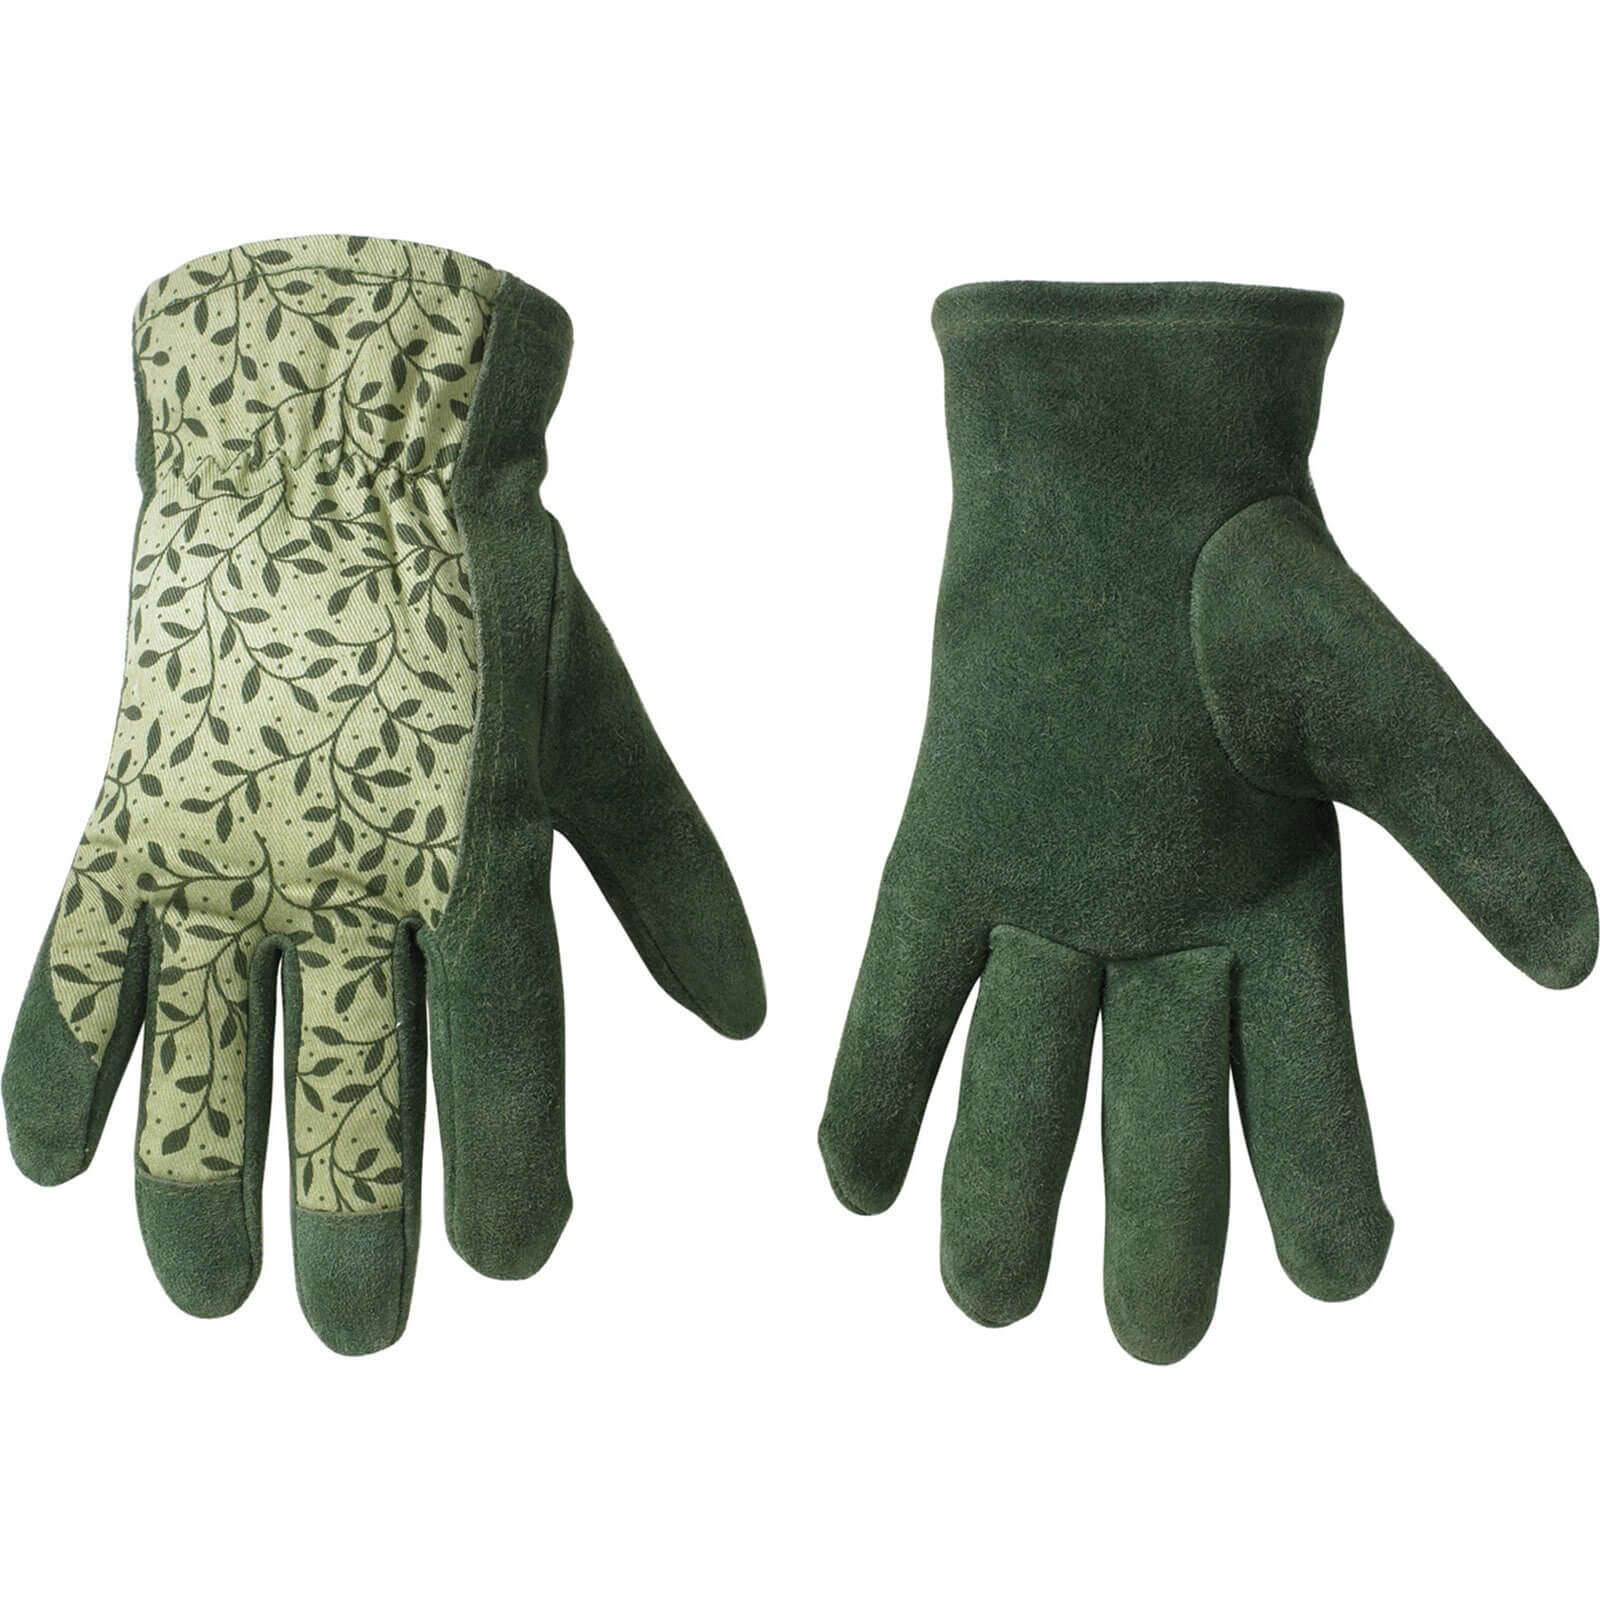 Kunys Garden General Purpose Safety Cuff Gloves Small